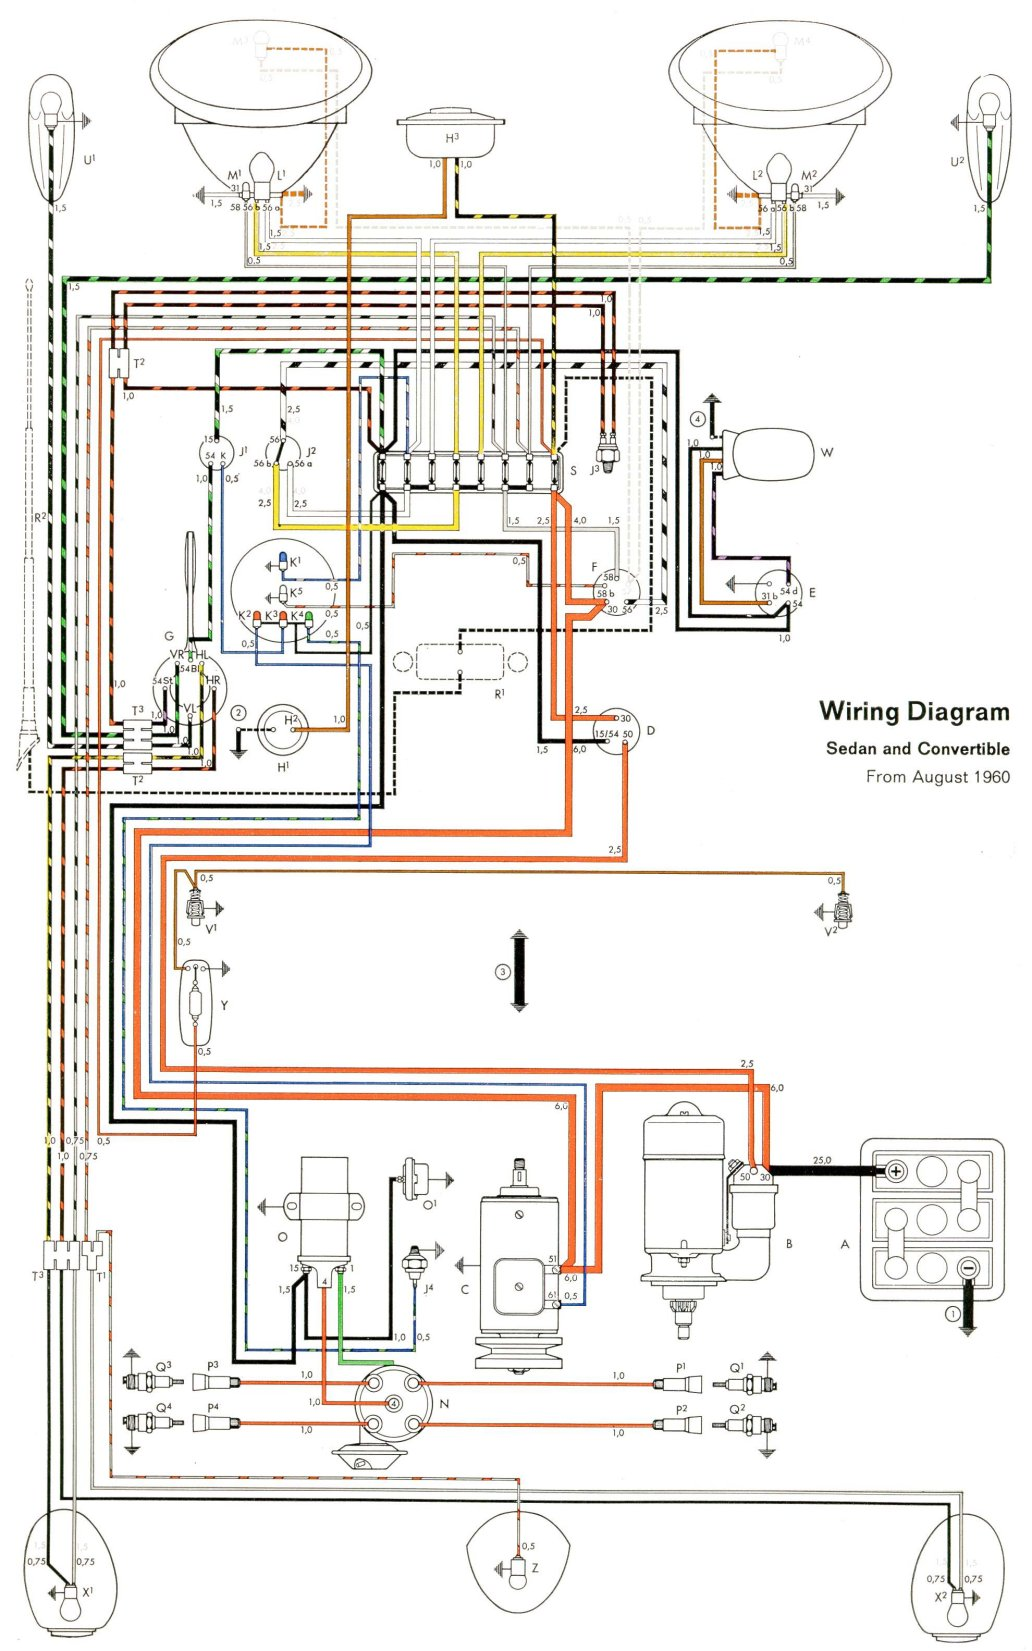 1963 vw double cab wiring diagrams diagram for 1970 vw beatle fusebox wiring diagrams thesamba.com :: type 1 wiring diagrams #9